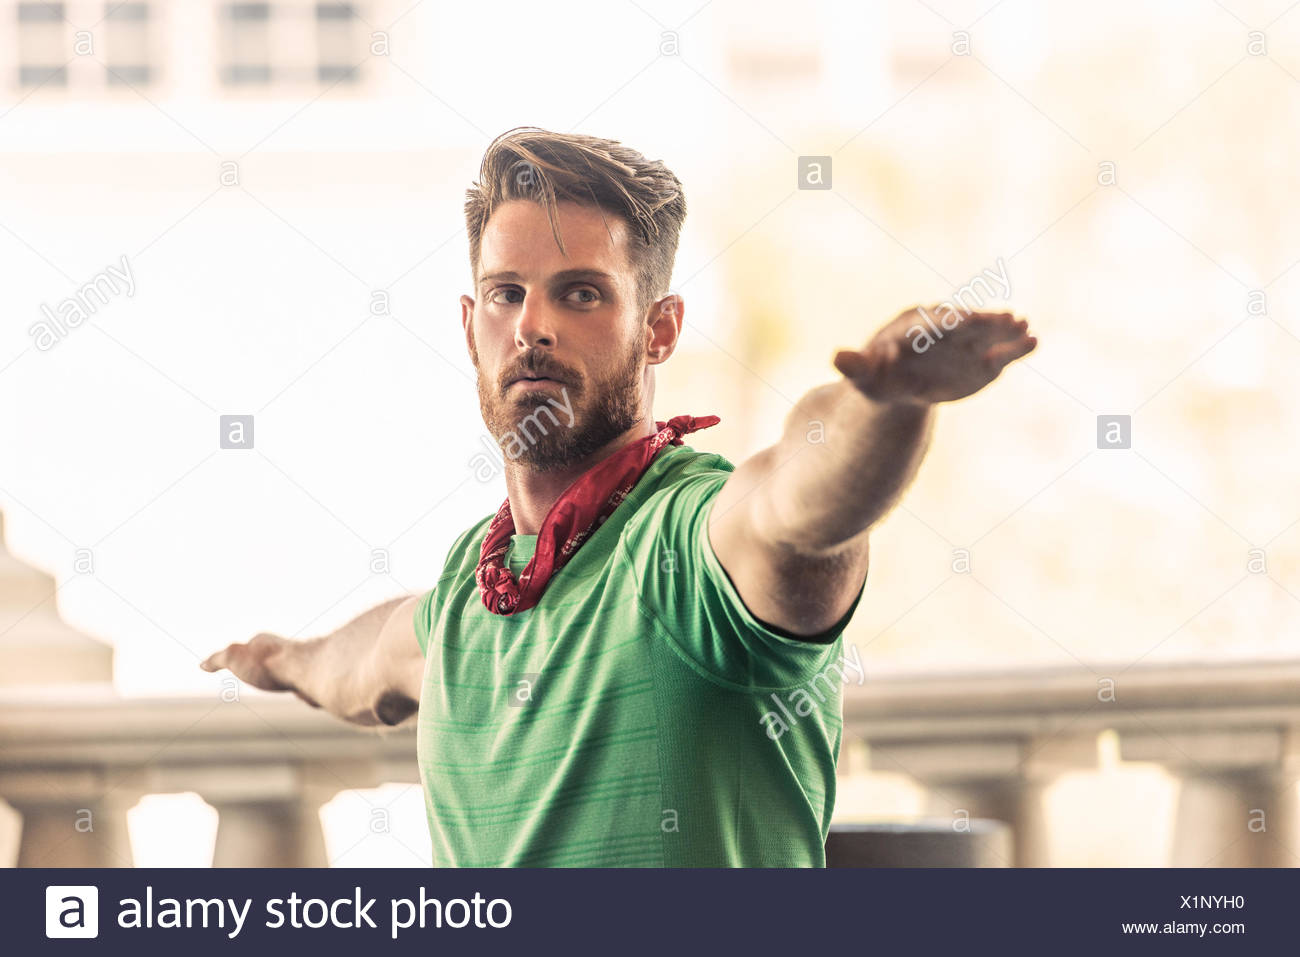 Young adult man in yoga position - Stock Image